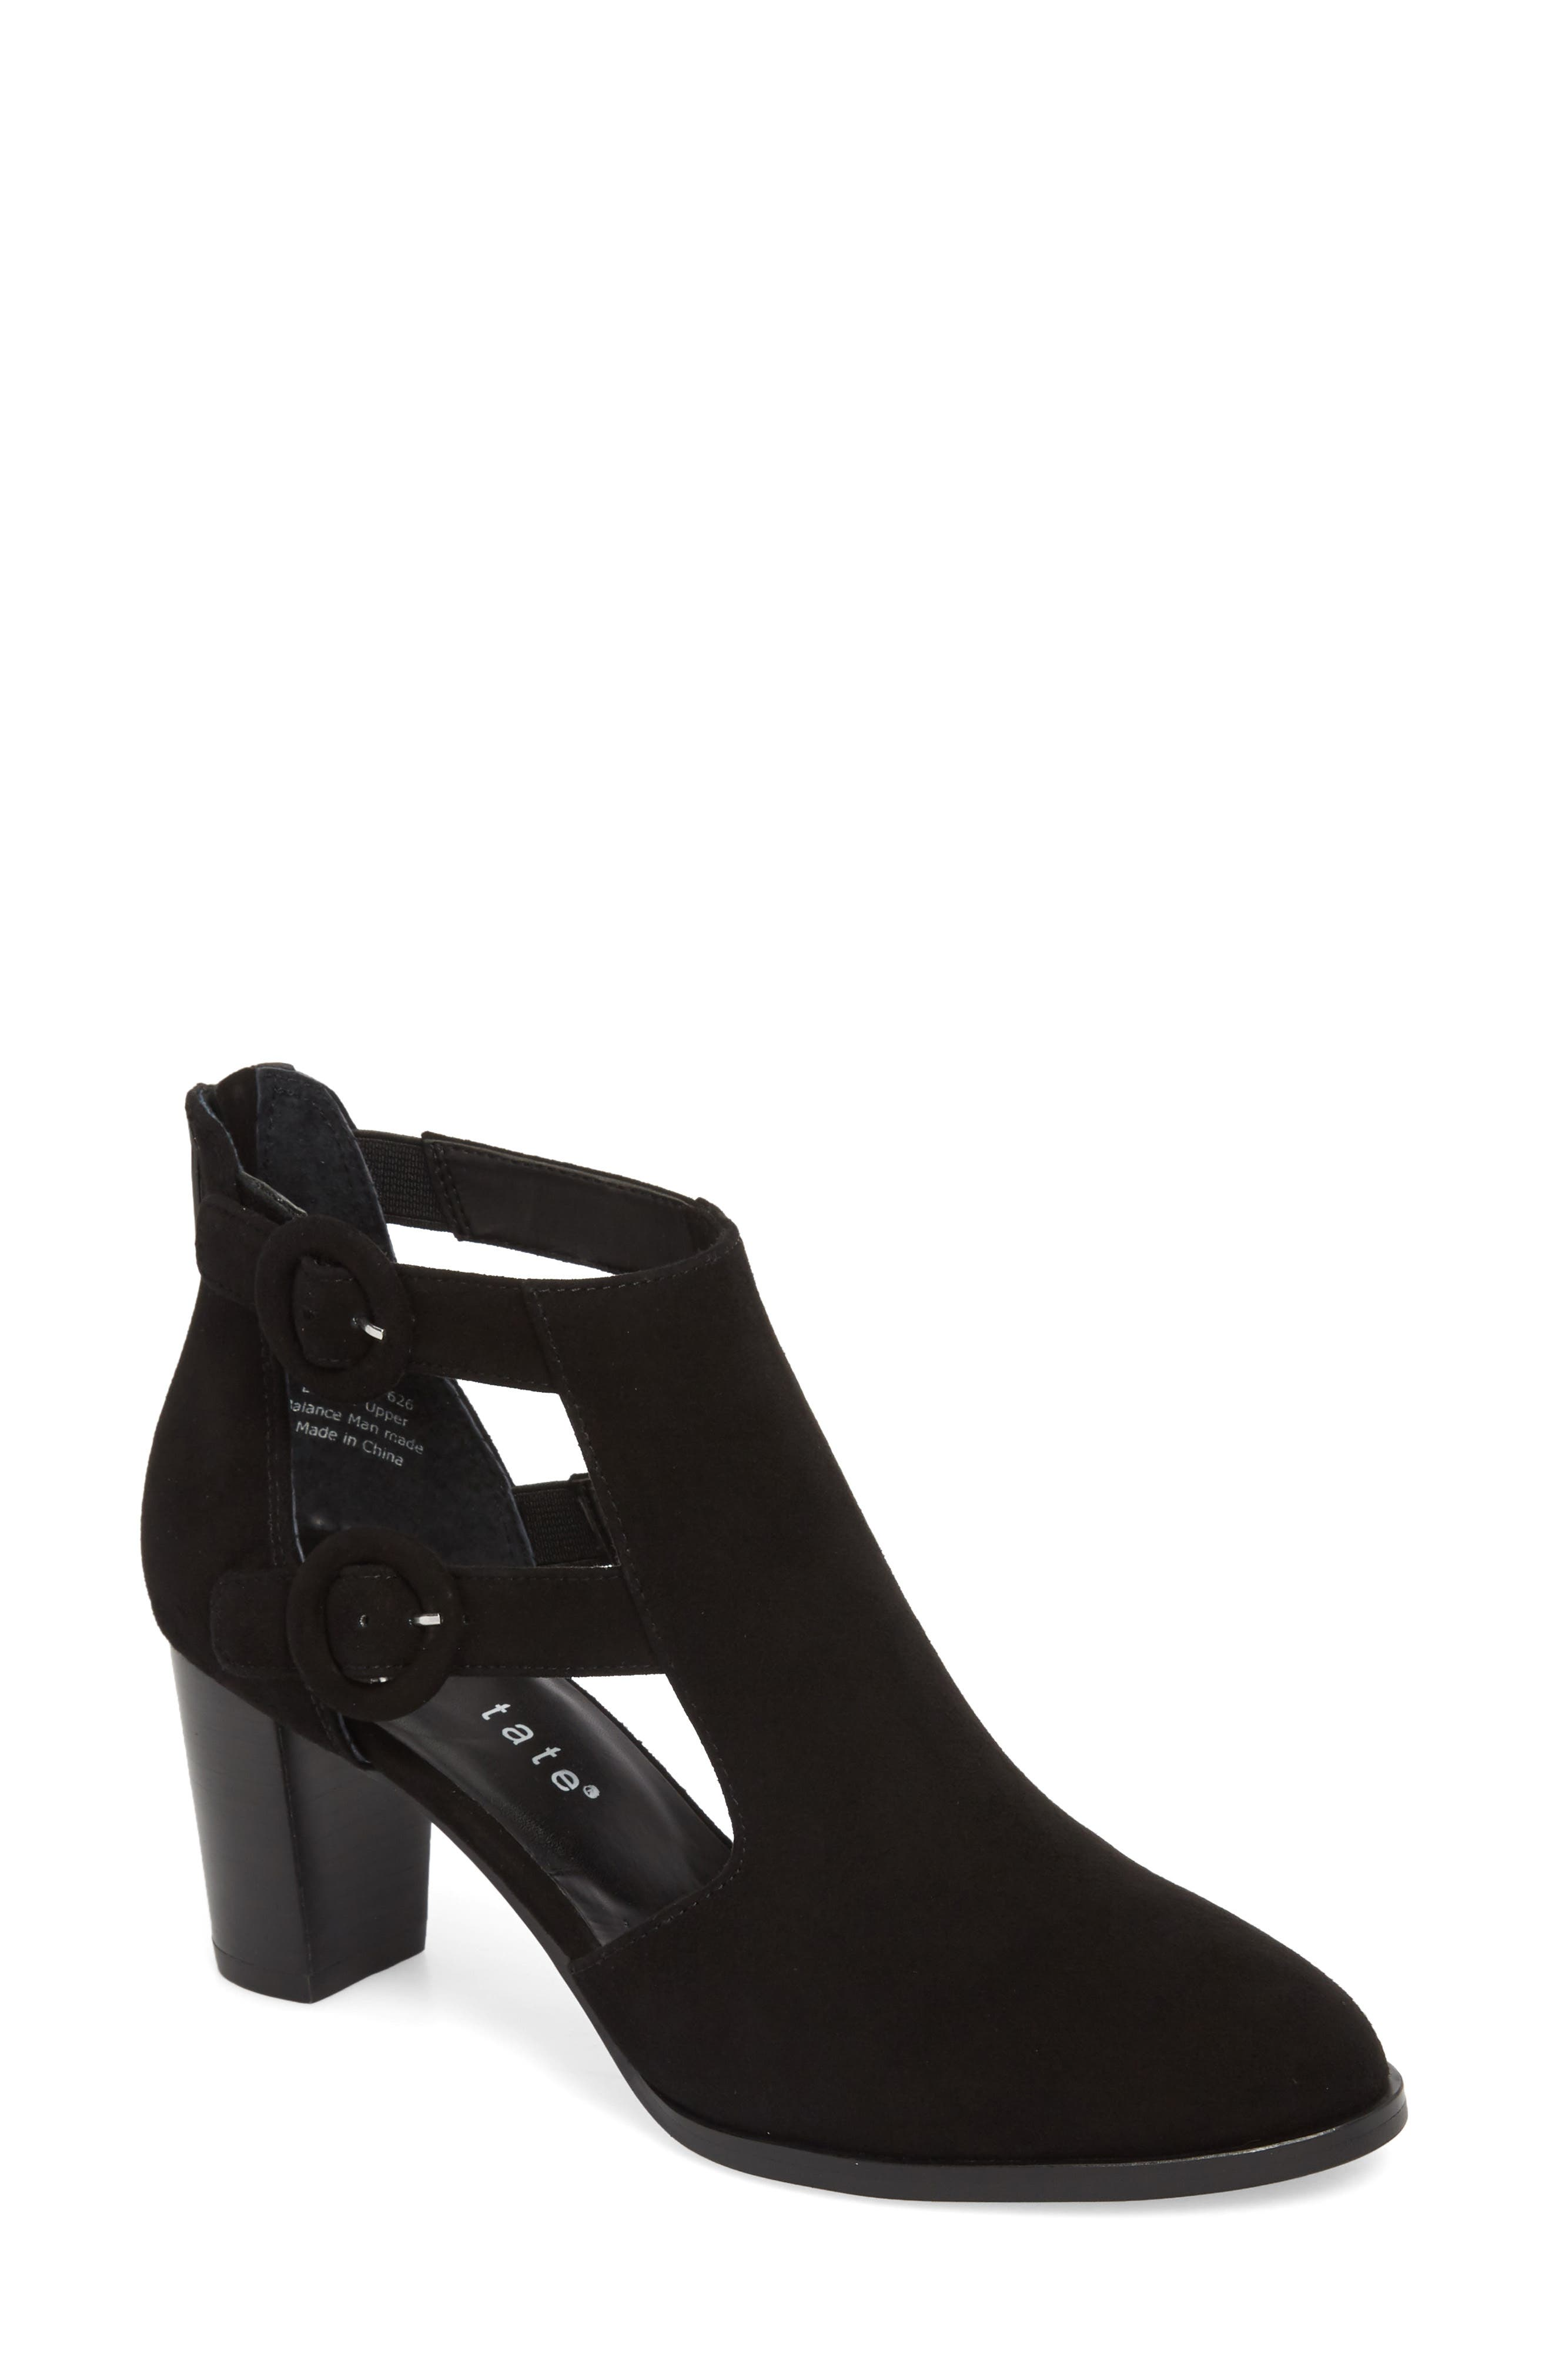 David Tate Exotic Caged Bootie, Black